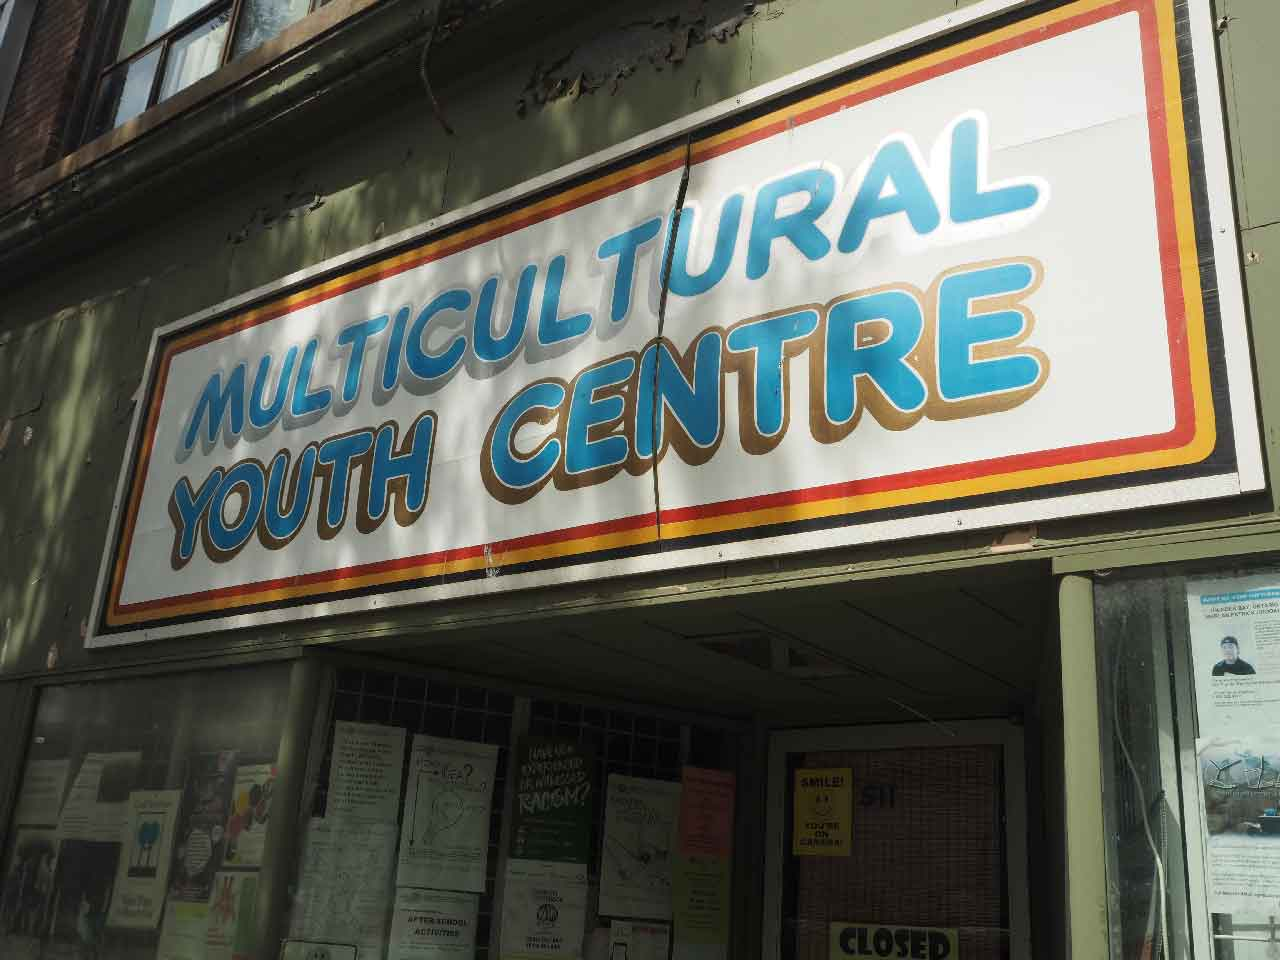 Reginal Multicultural Youth Centre